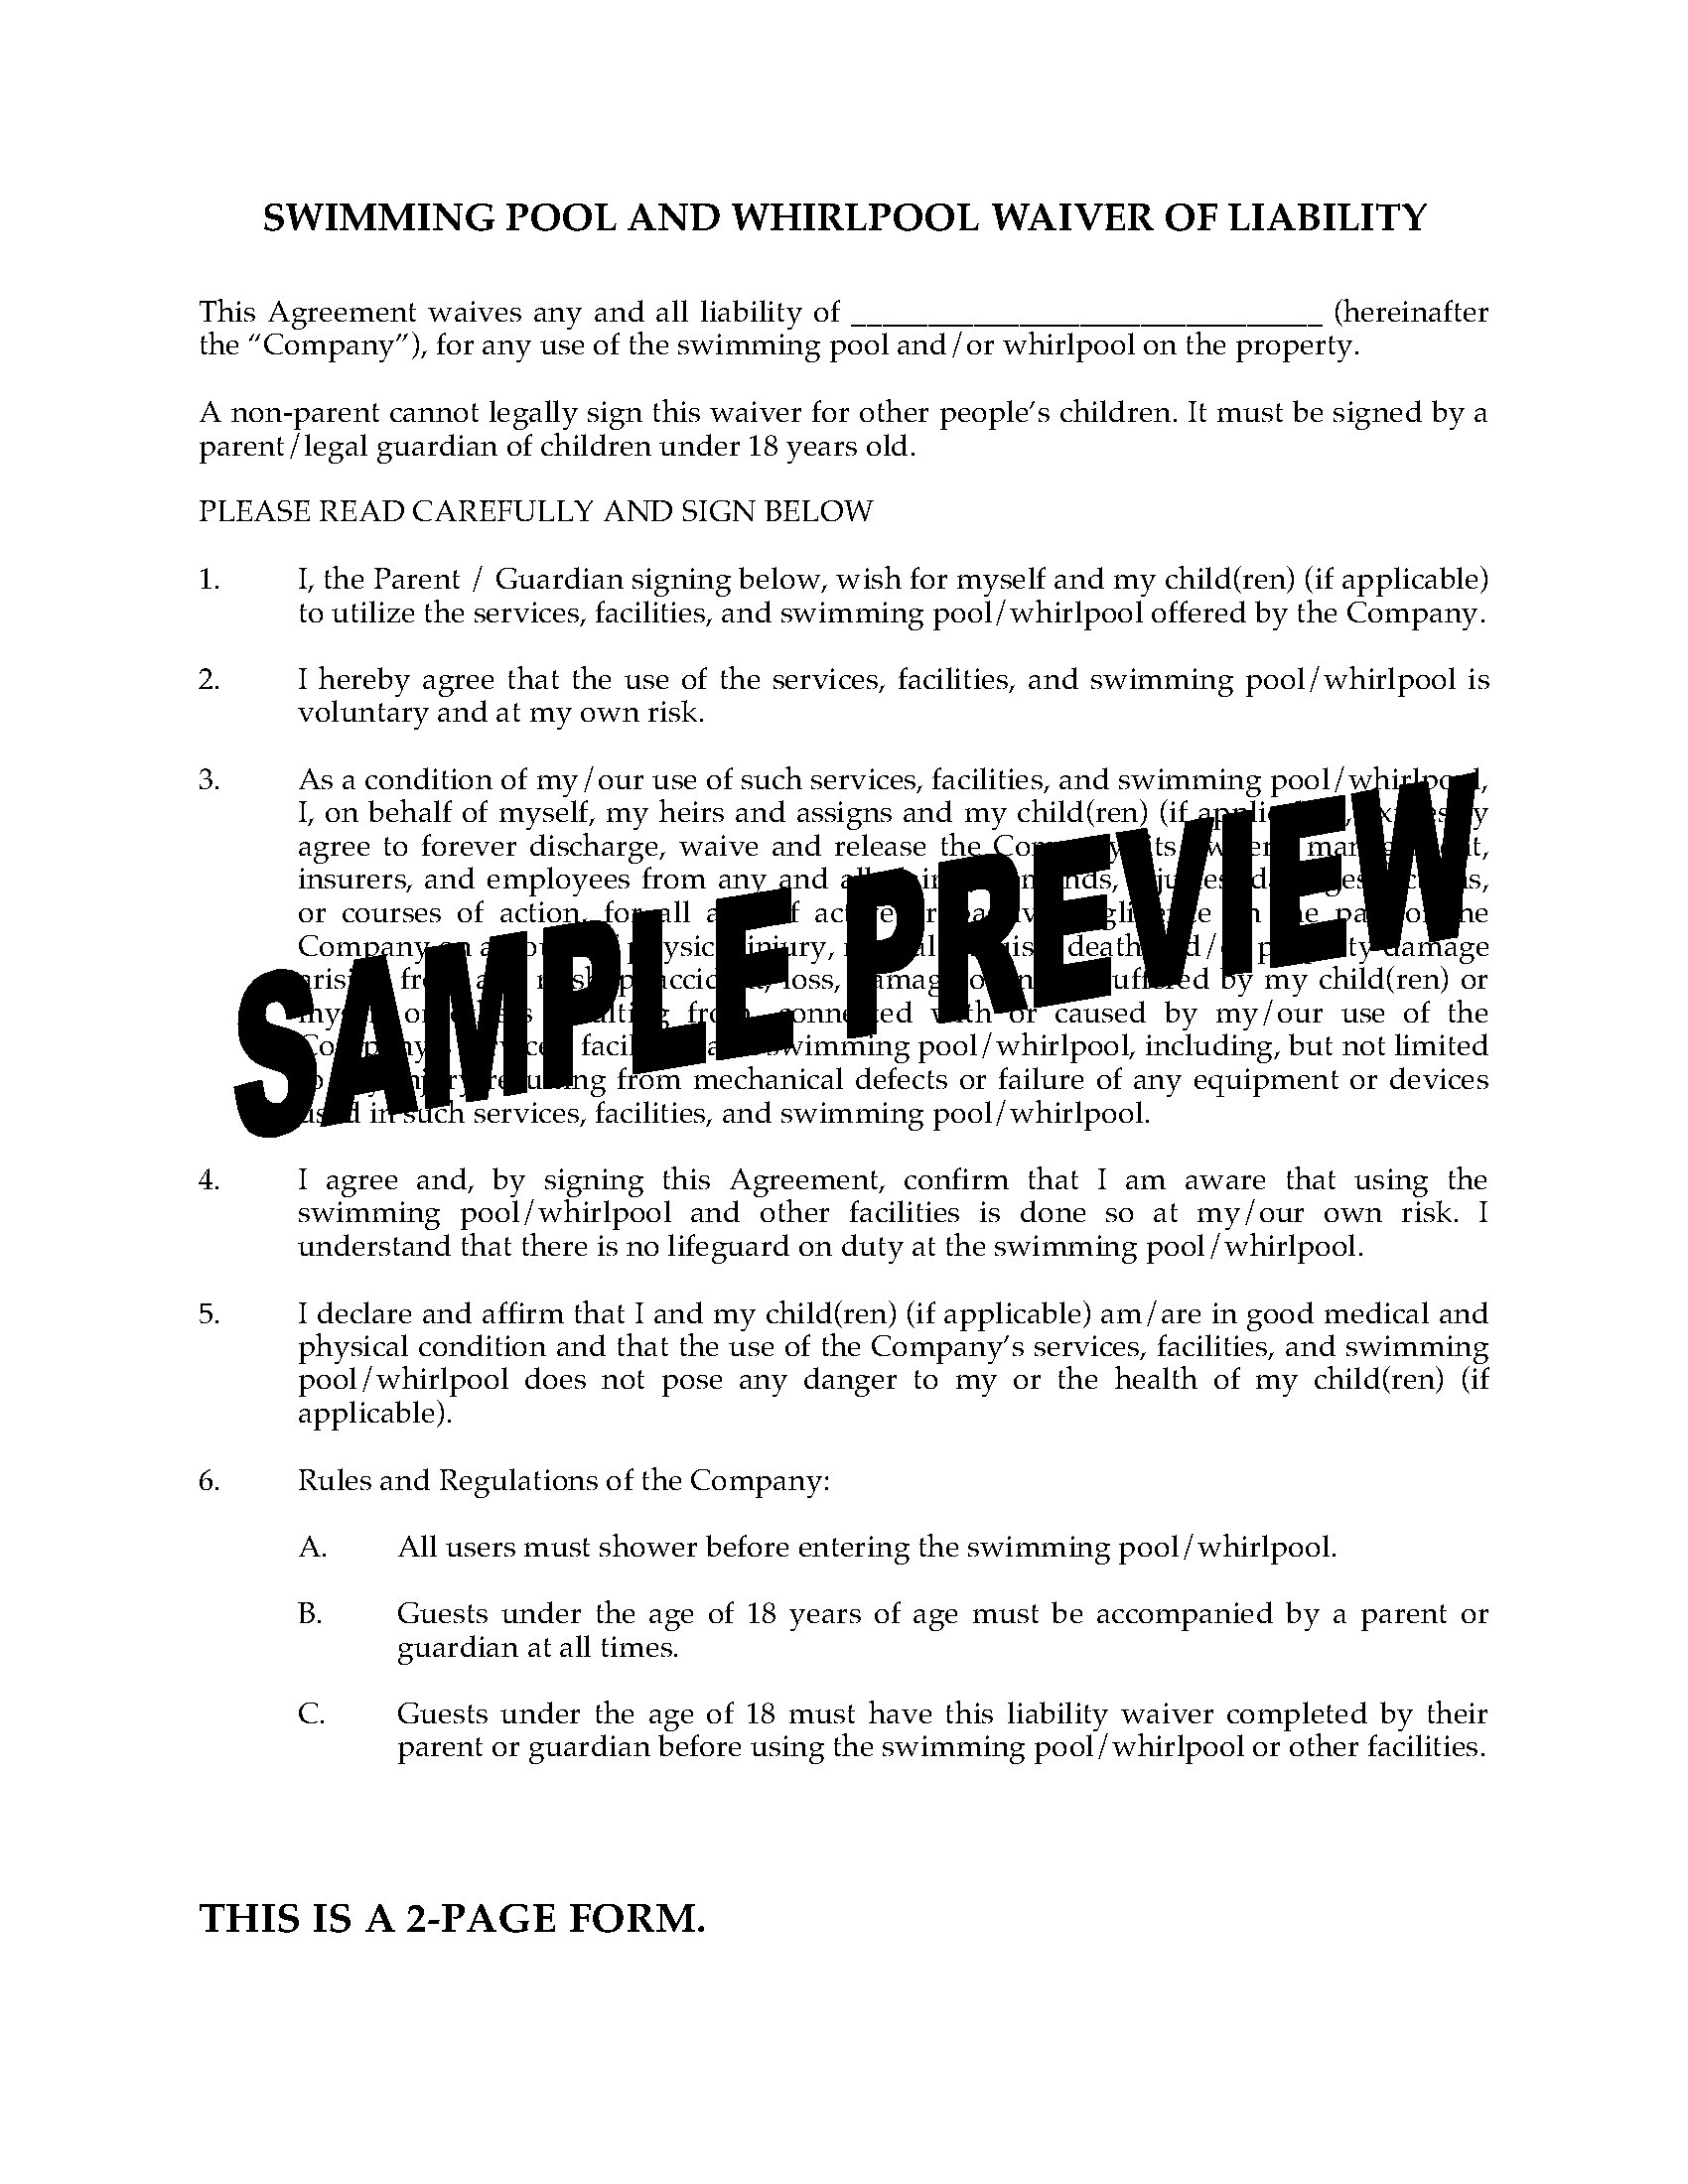 Swimming Pool And Whirlpool Waiver Of Liability Form